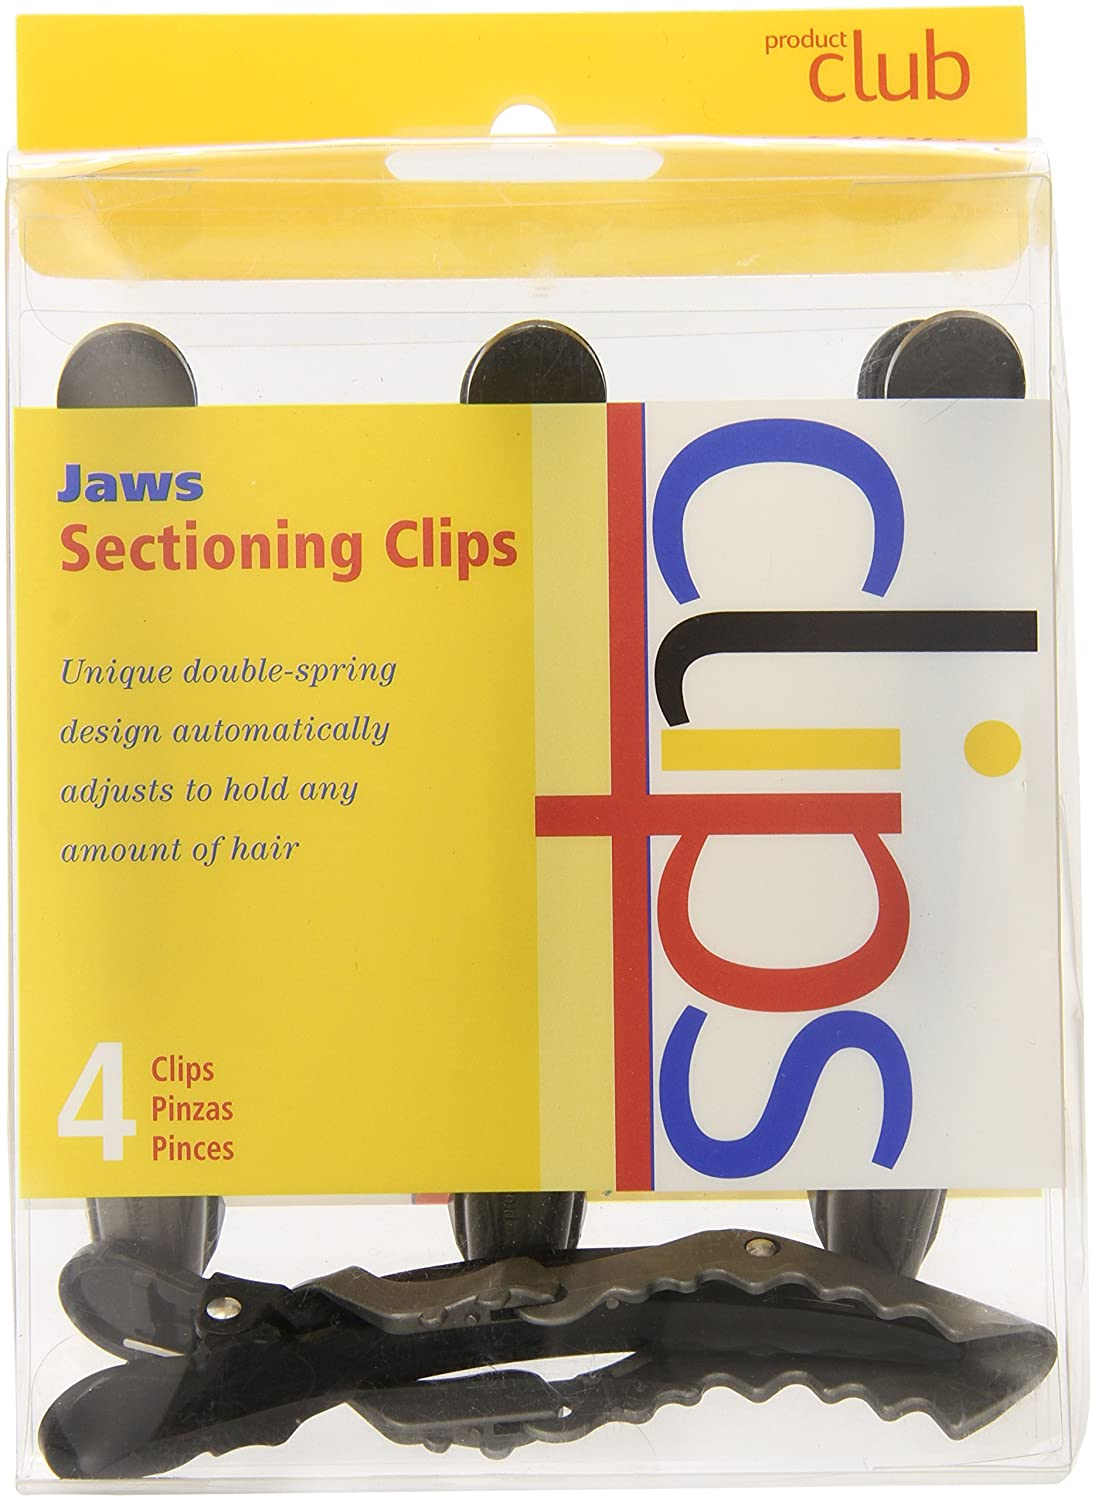 Product Club Jaws Sectioning Clips product differentiation